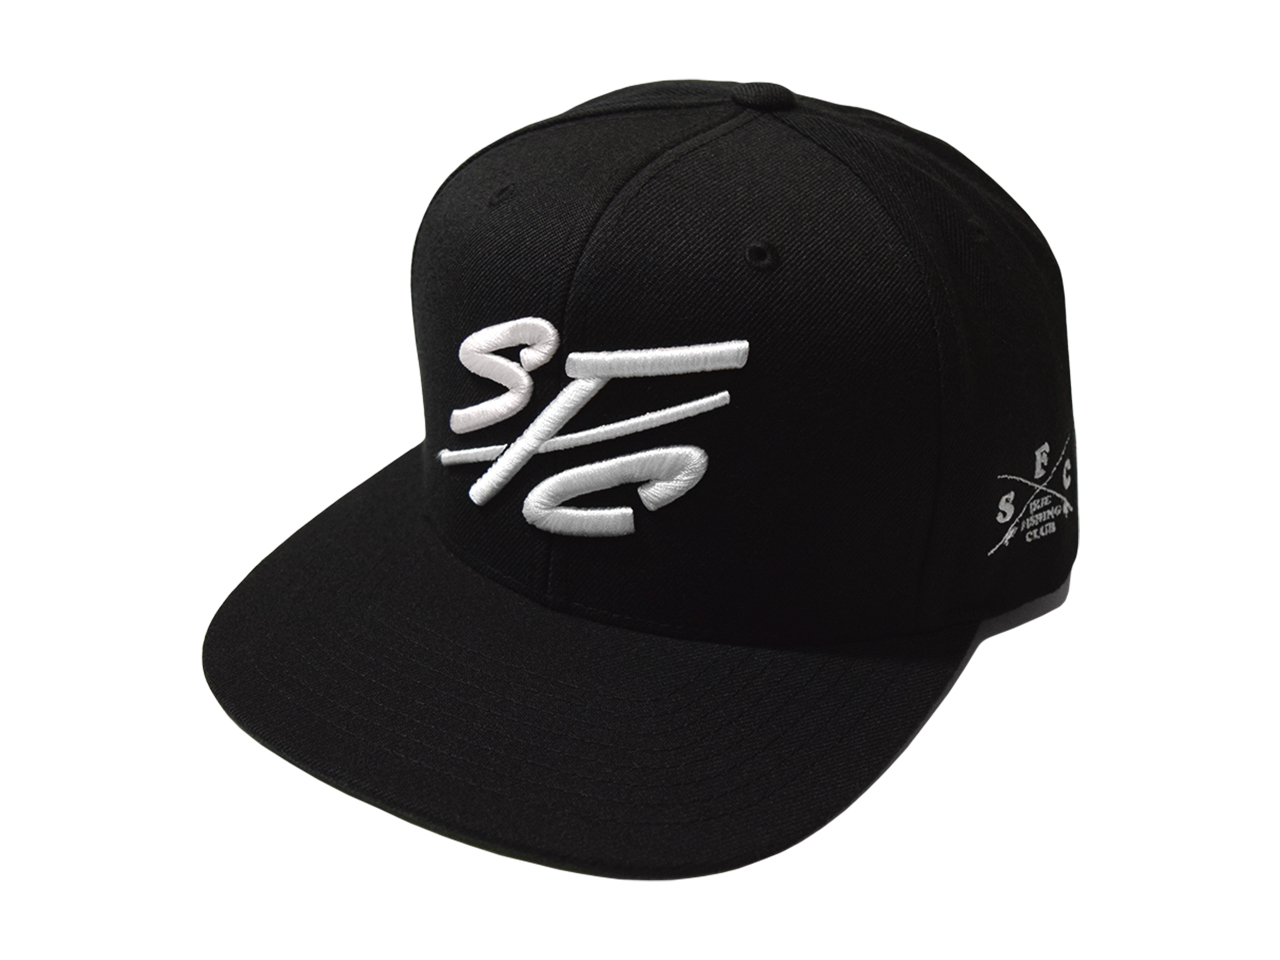 SFC LOGO CAP - IRIE FISHING CLUB